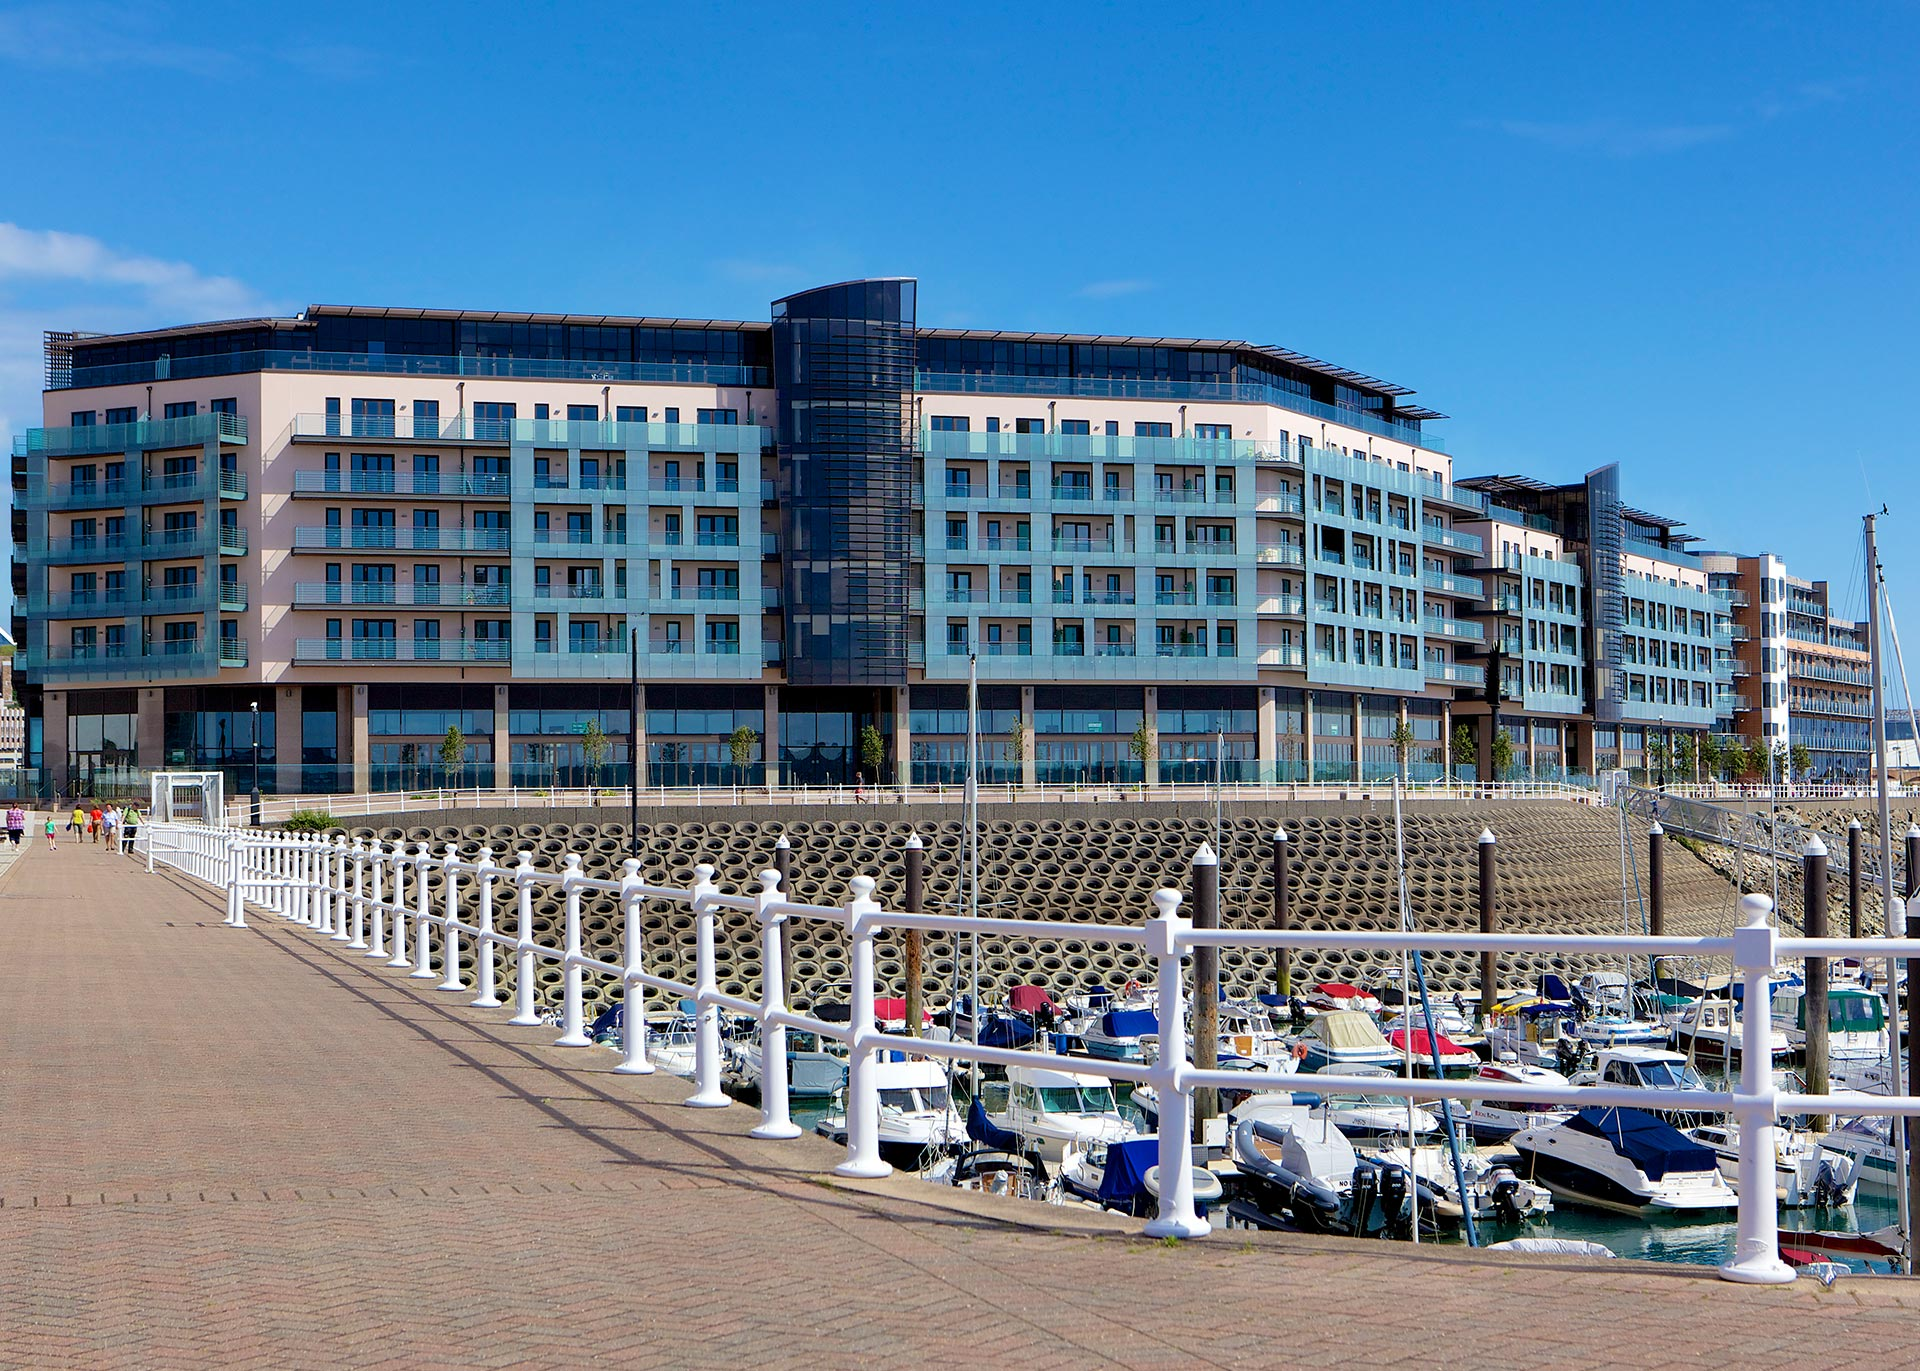 The Castle Quay development in St Helier